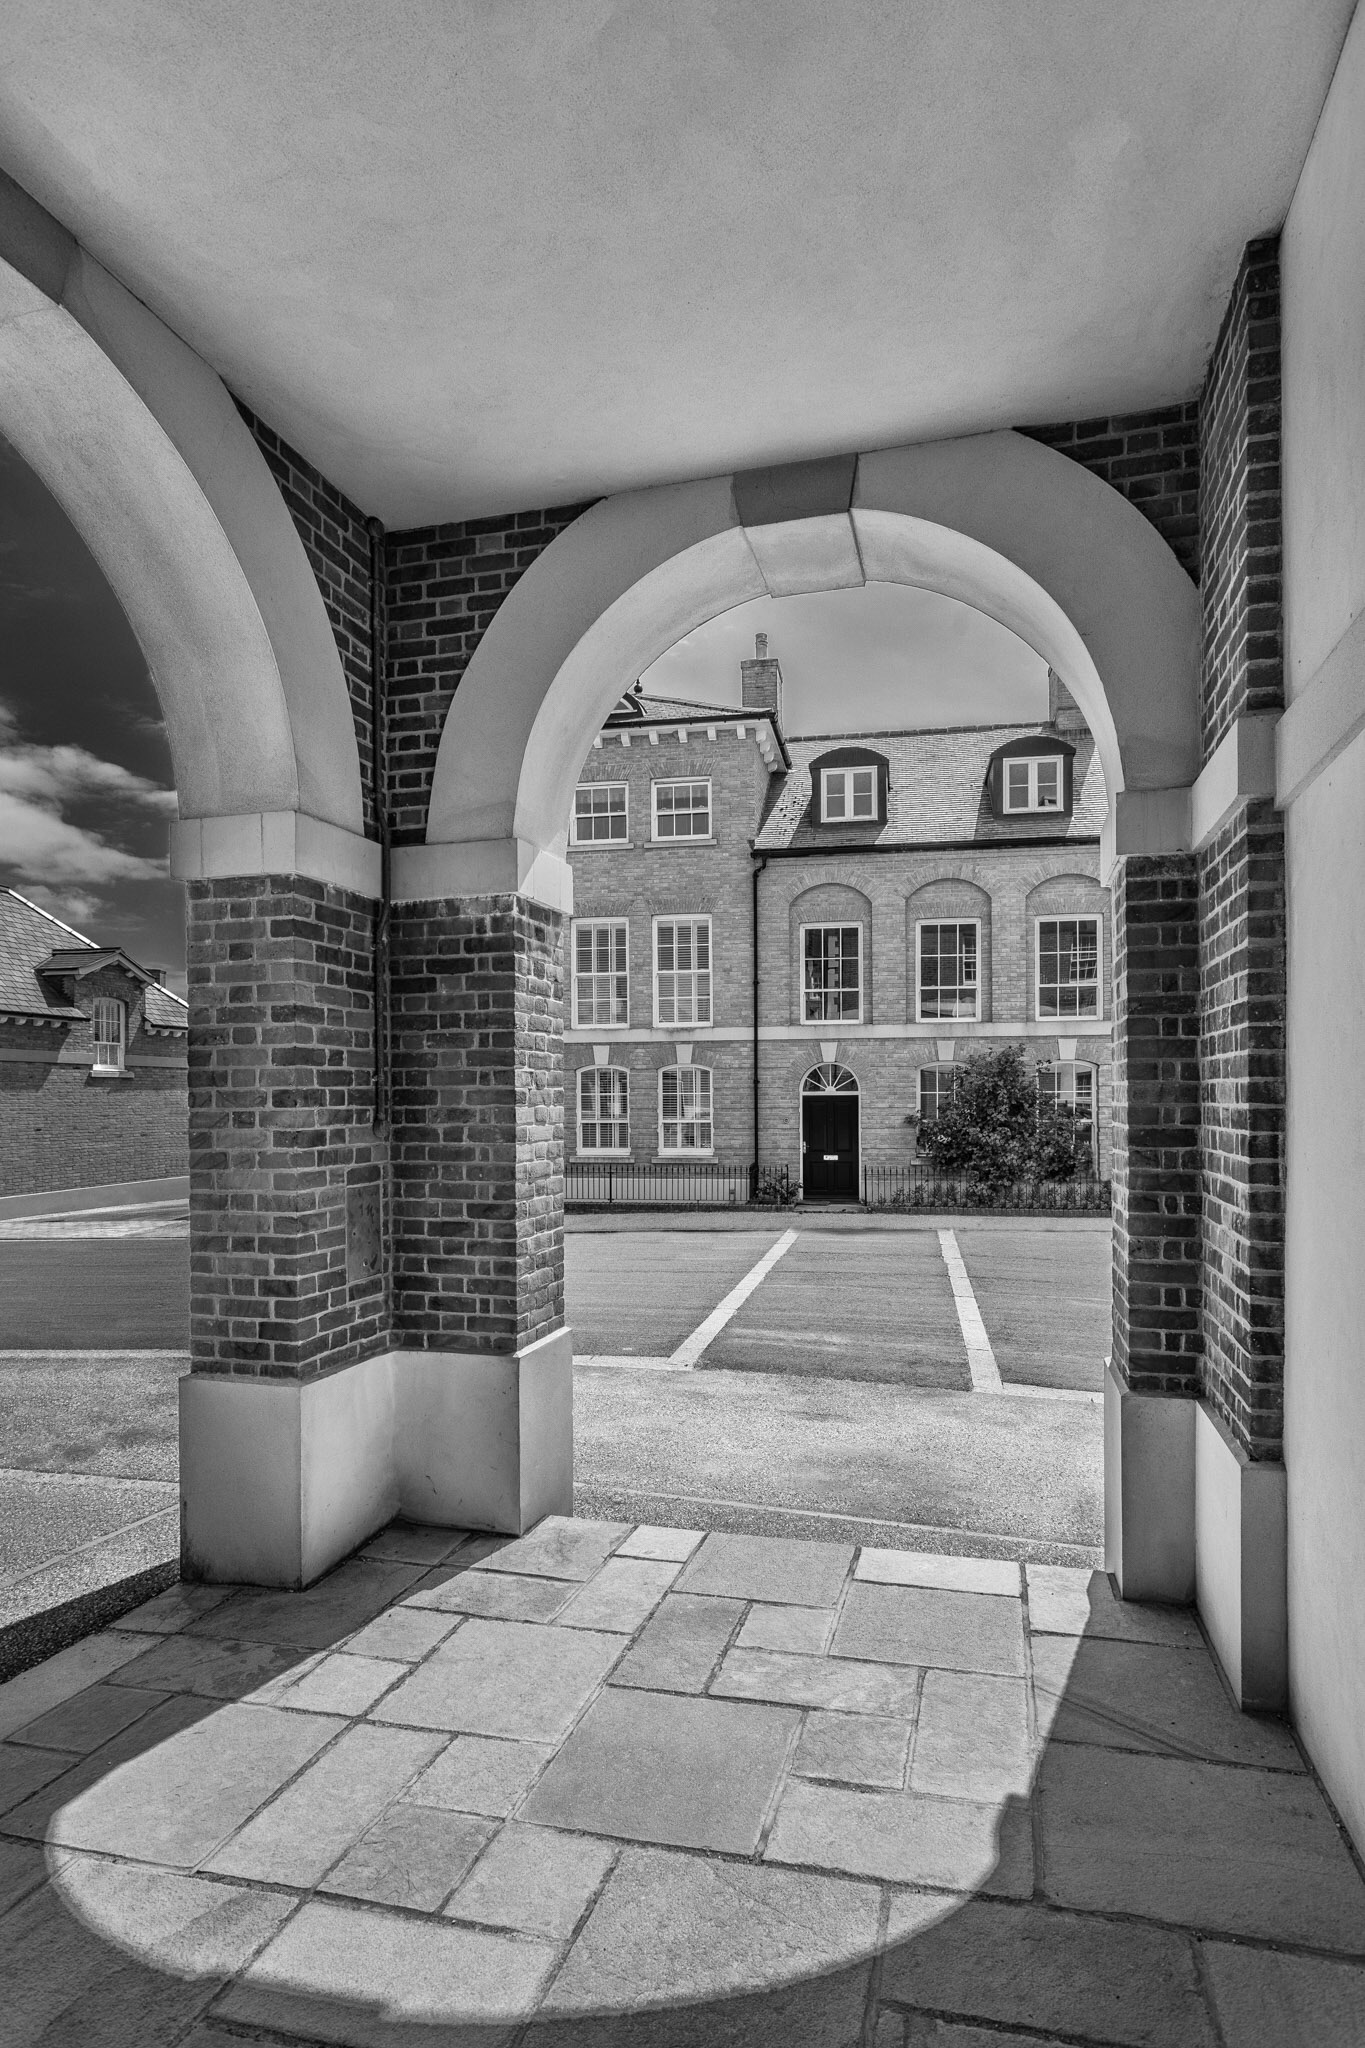 Another picture of Poundbury architecture in Dorset